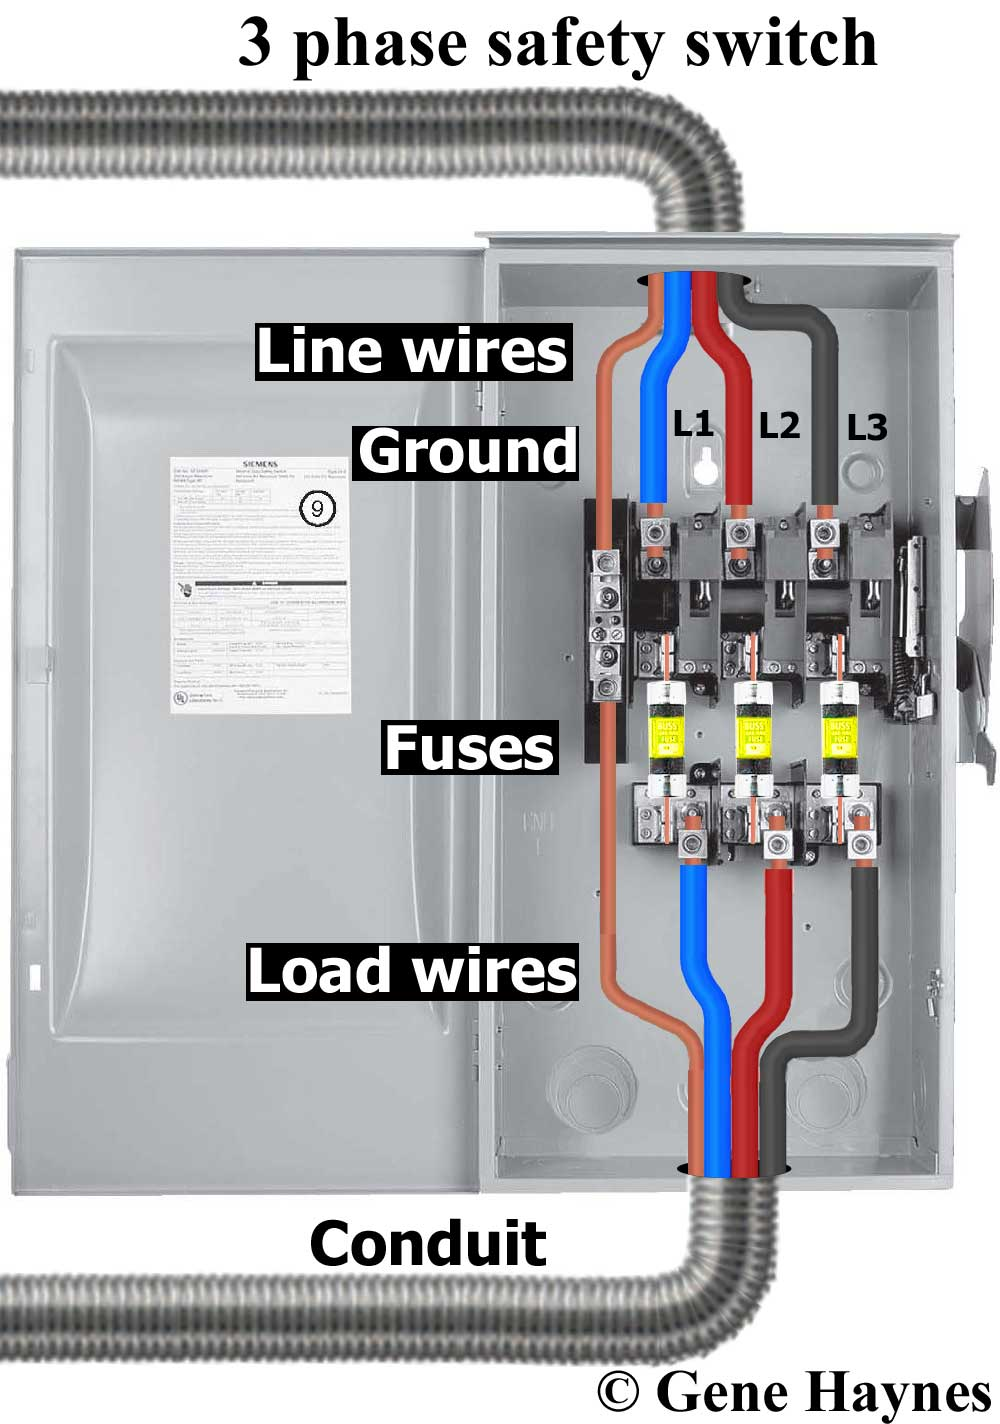 Fusable safety fuse how to wire safety switch  at gsmportal.co